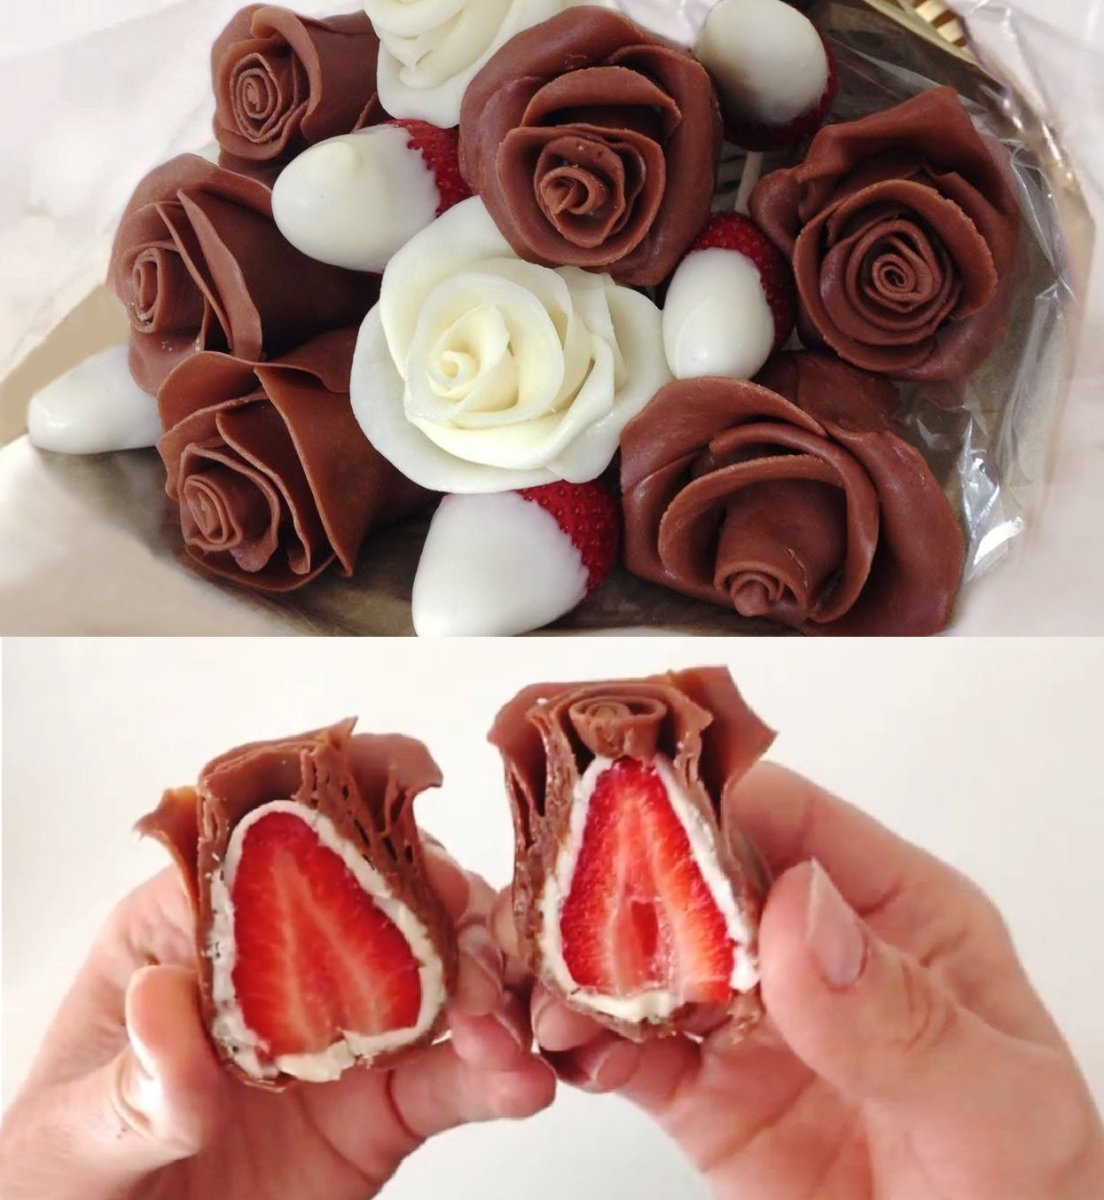 Gorgeous chocolate strawberry roses in a cute bouquet.